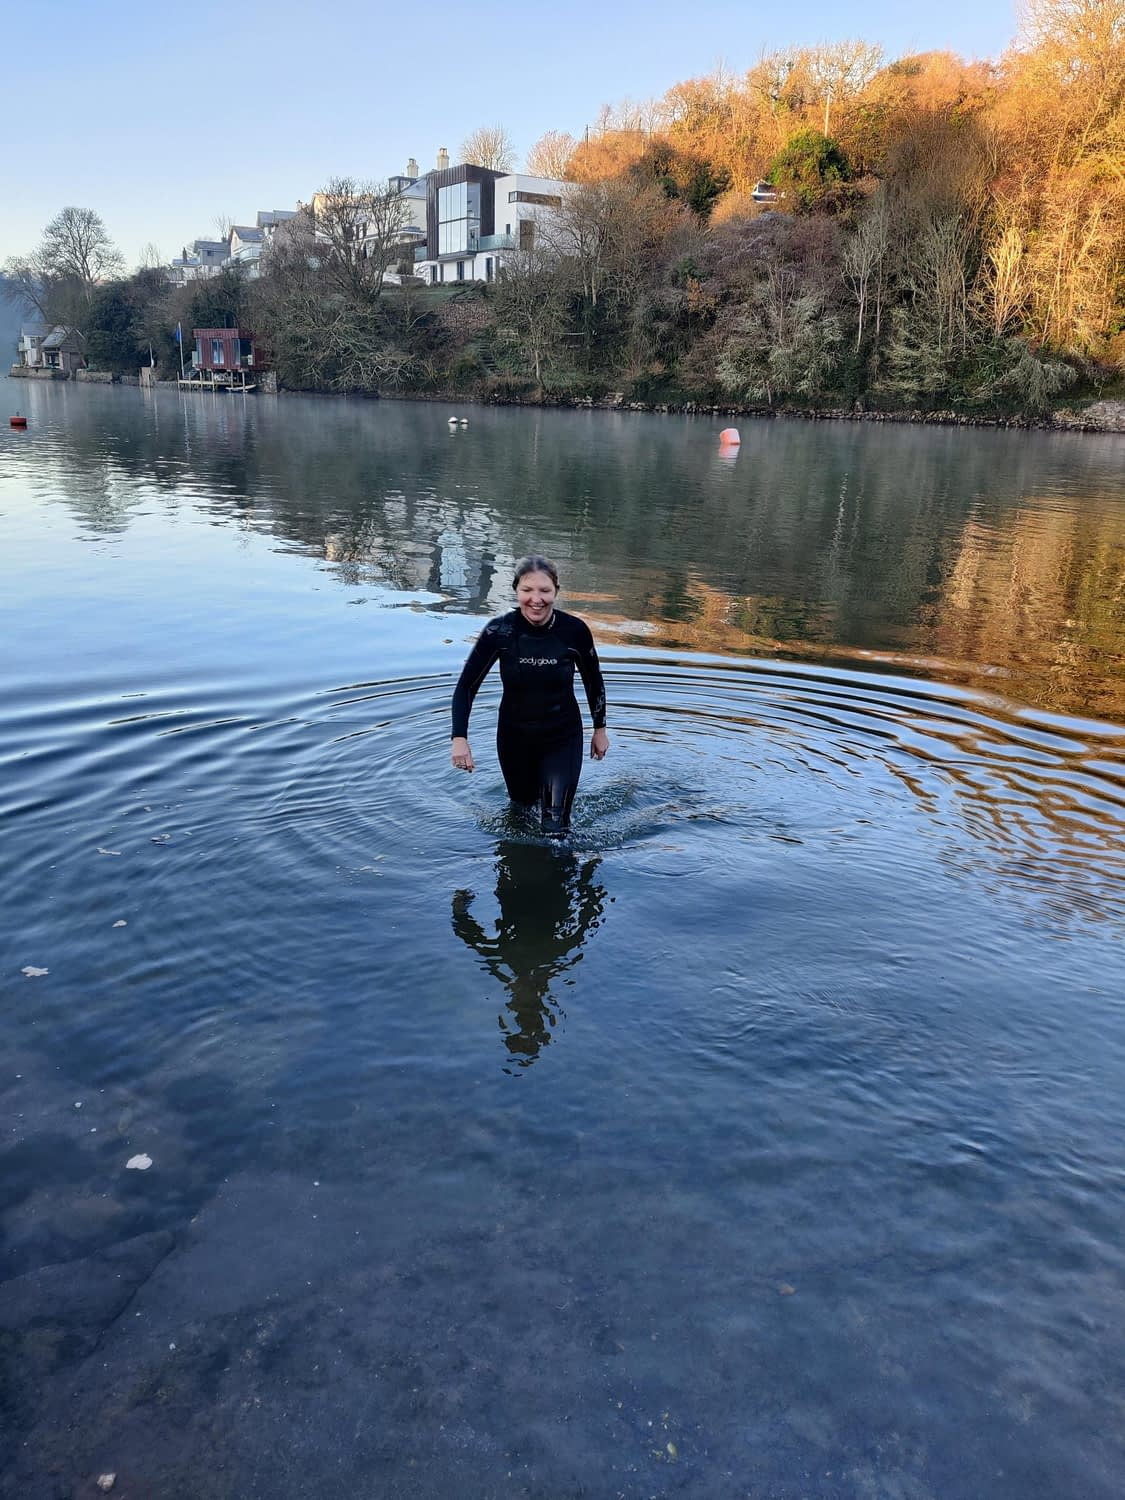 Wild Swimming at Anchor Cottage - Winter 2020 ready for a hot chocolate